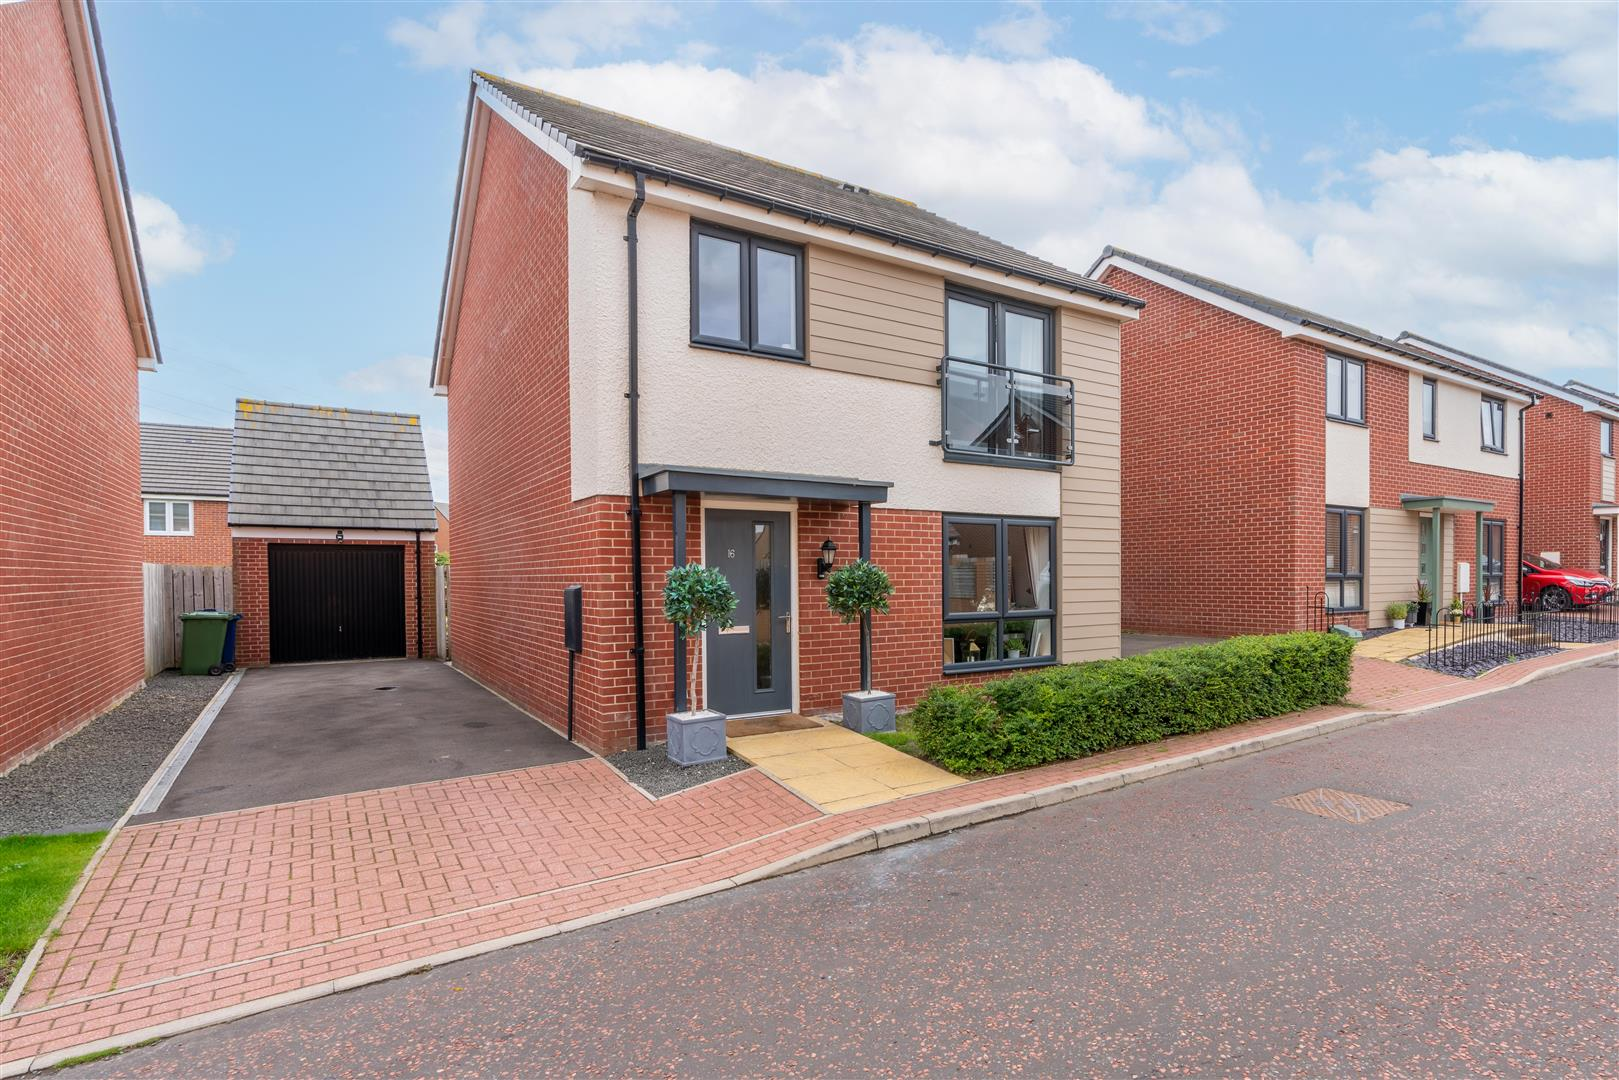 4 bed detached house for sale in Bridget Gardens, Newcastle Upon Tyne, NE13